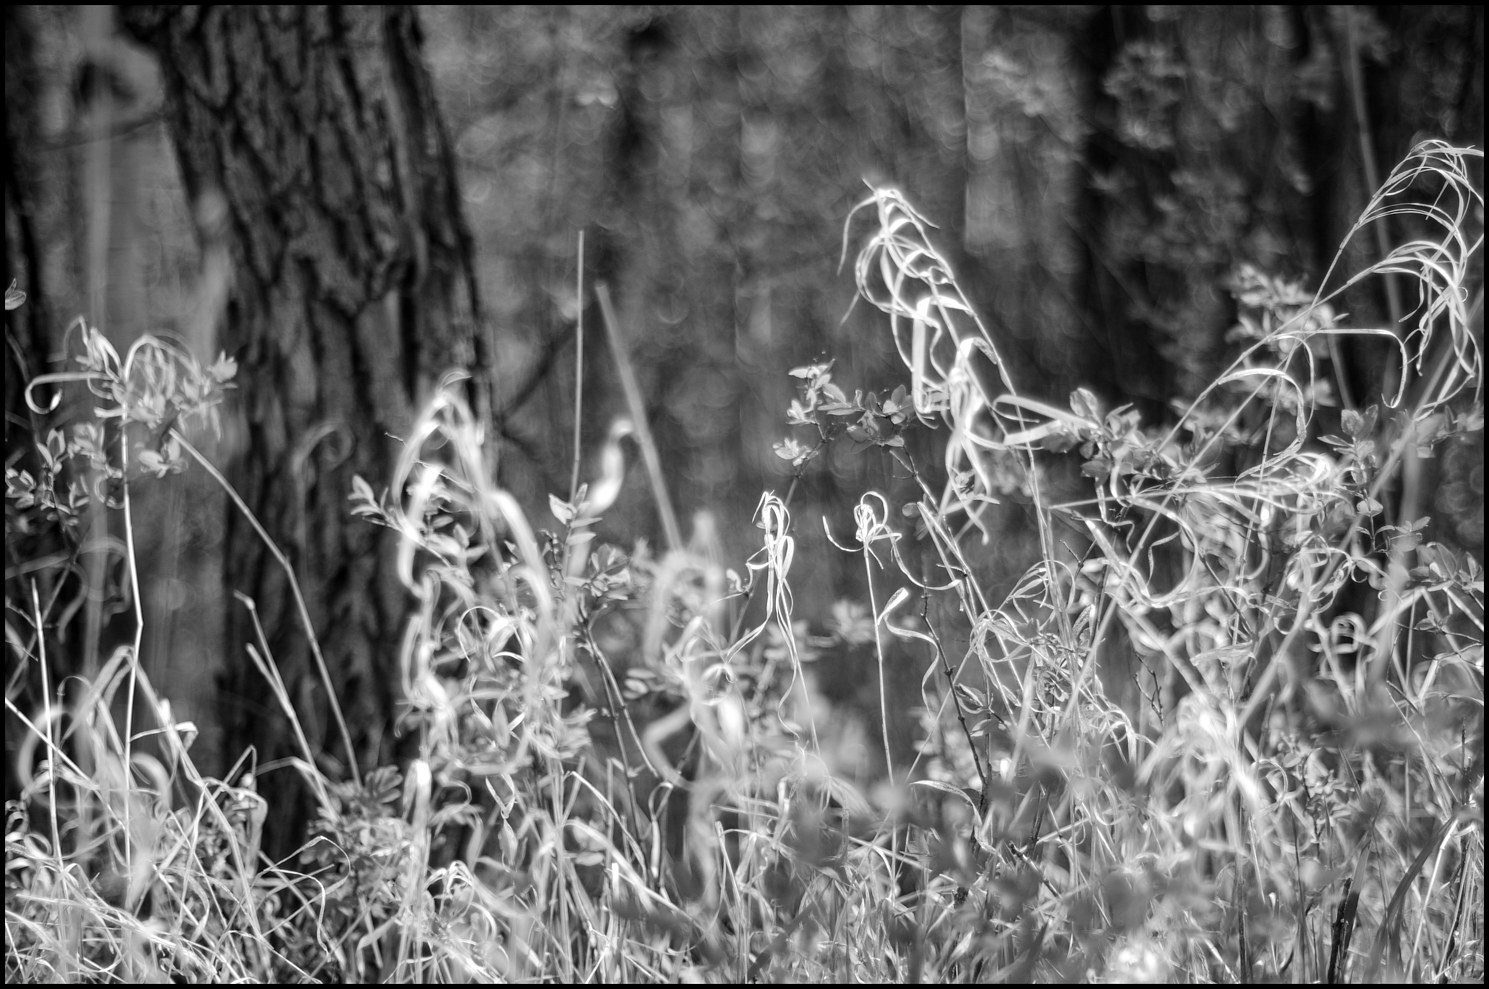 AAA_4919-Edit B&W Grass for web by Jim Friesen